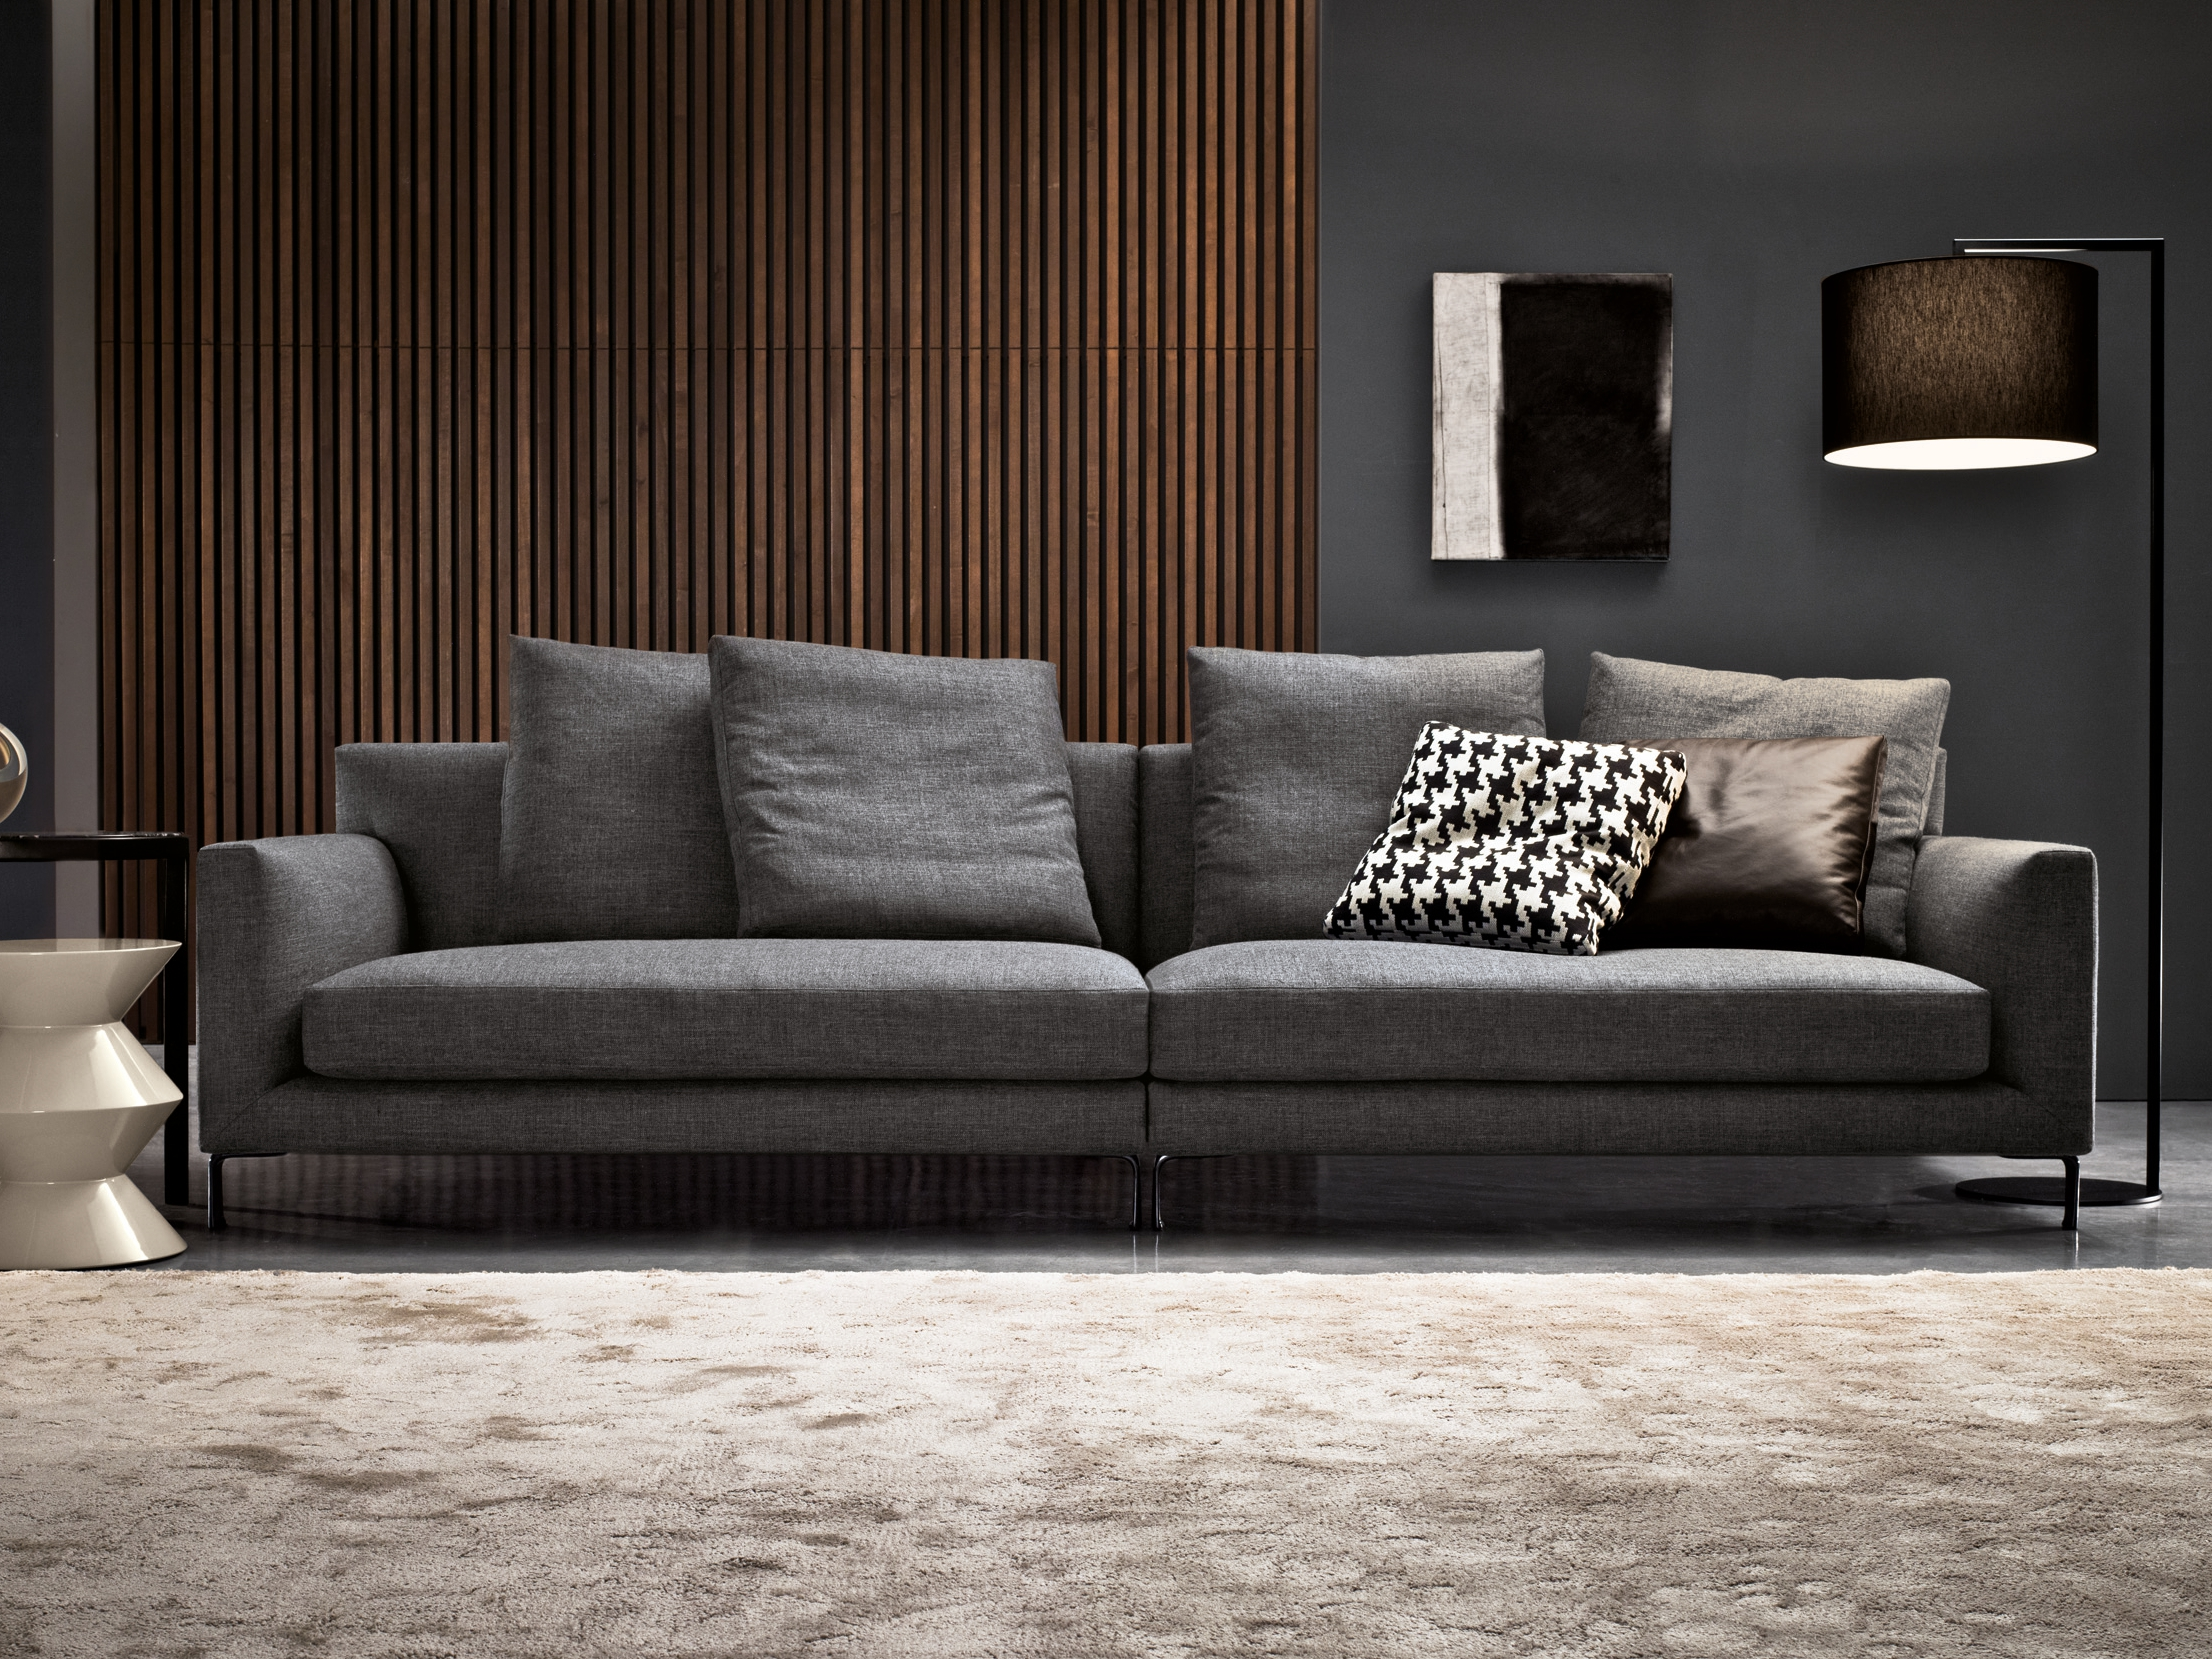 Allen by minotti design rodolfo dordoni for Sofa gebraucht